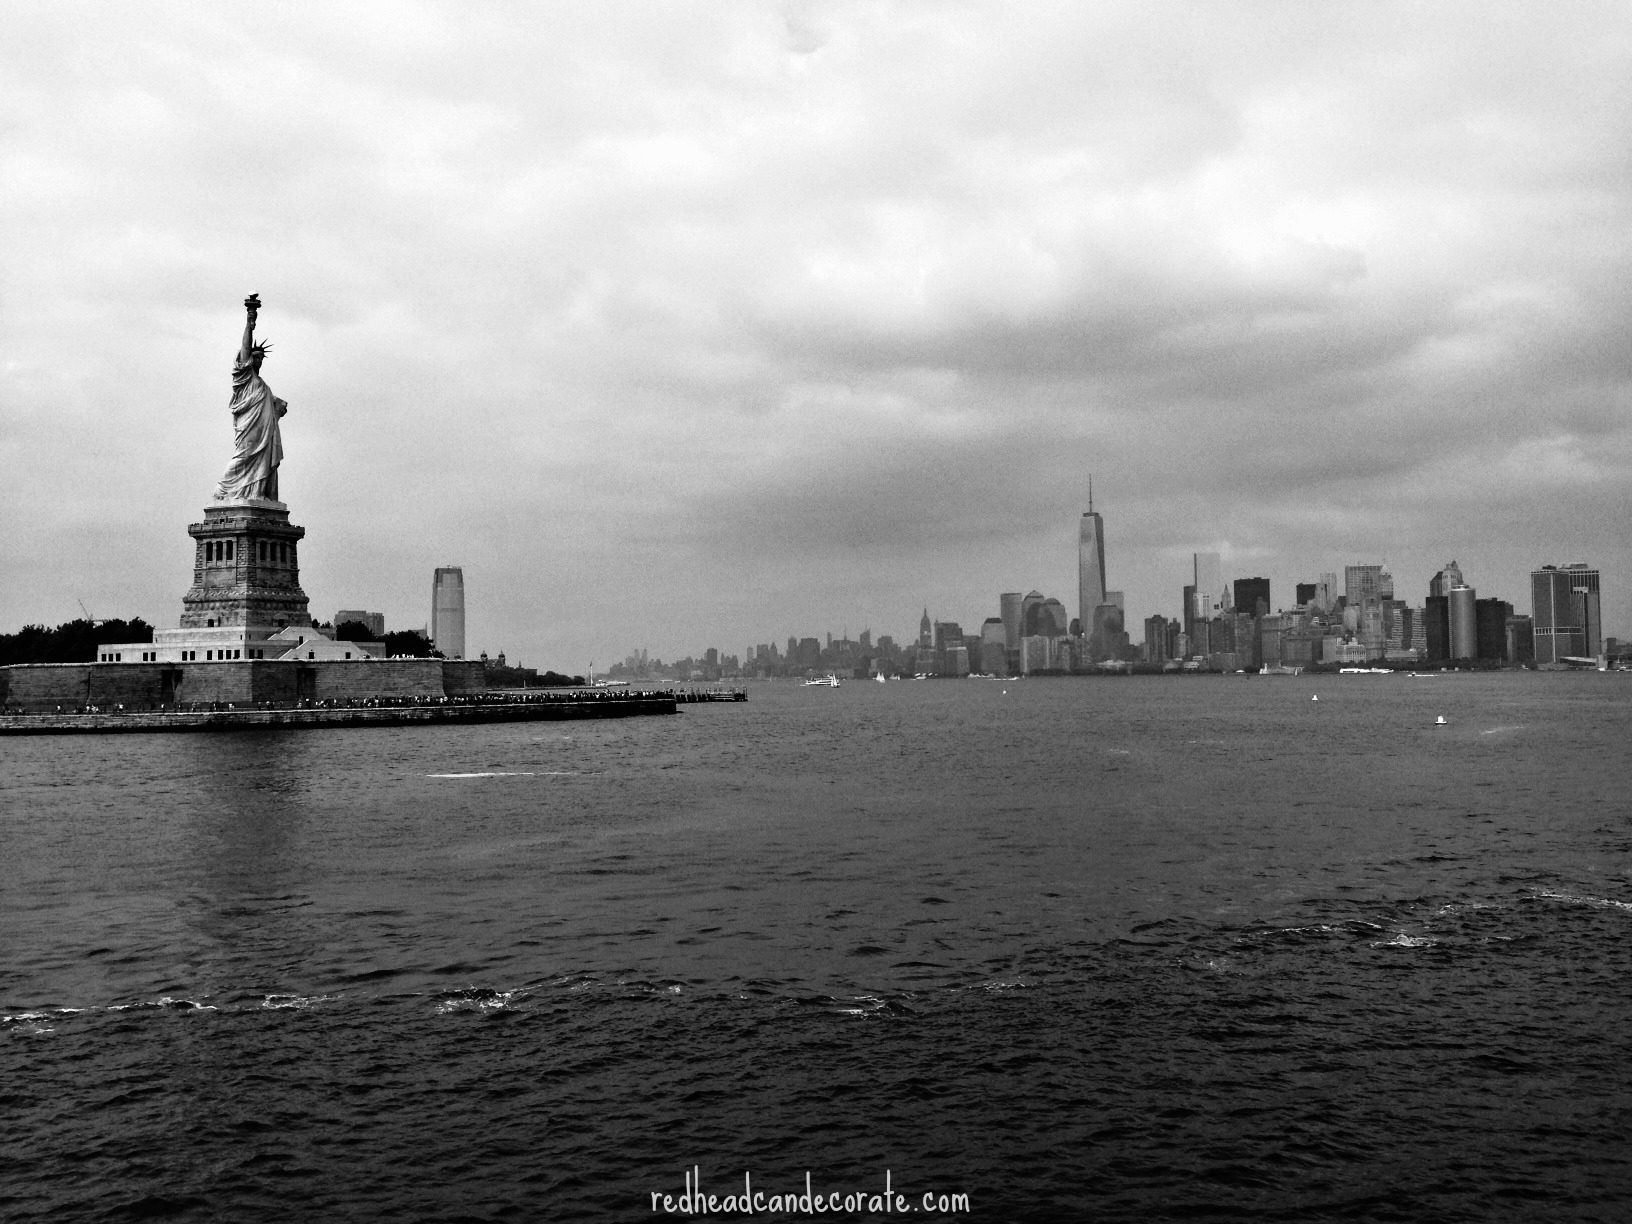 statue-of-liberty-cloudy-day-black-and-white